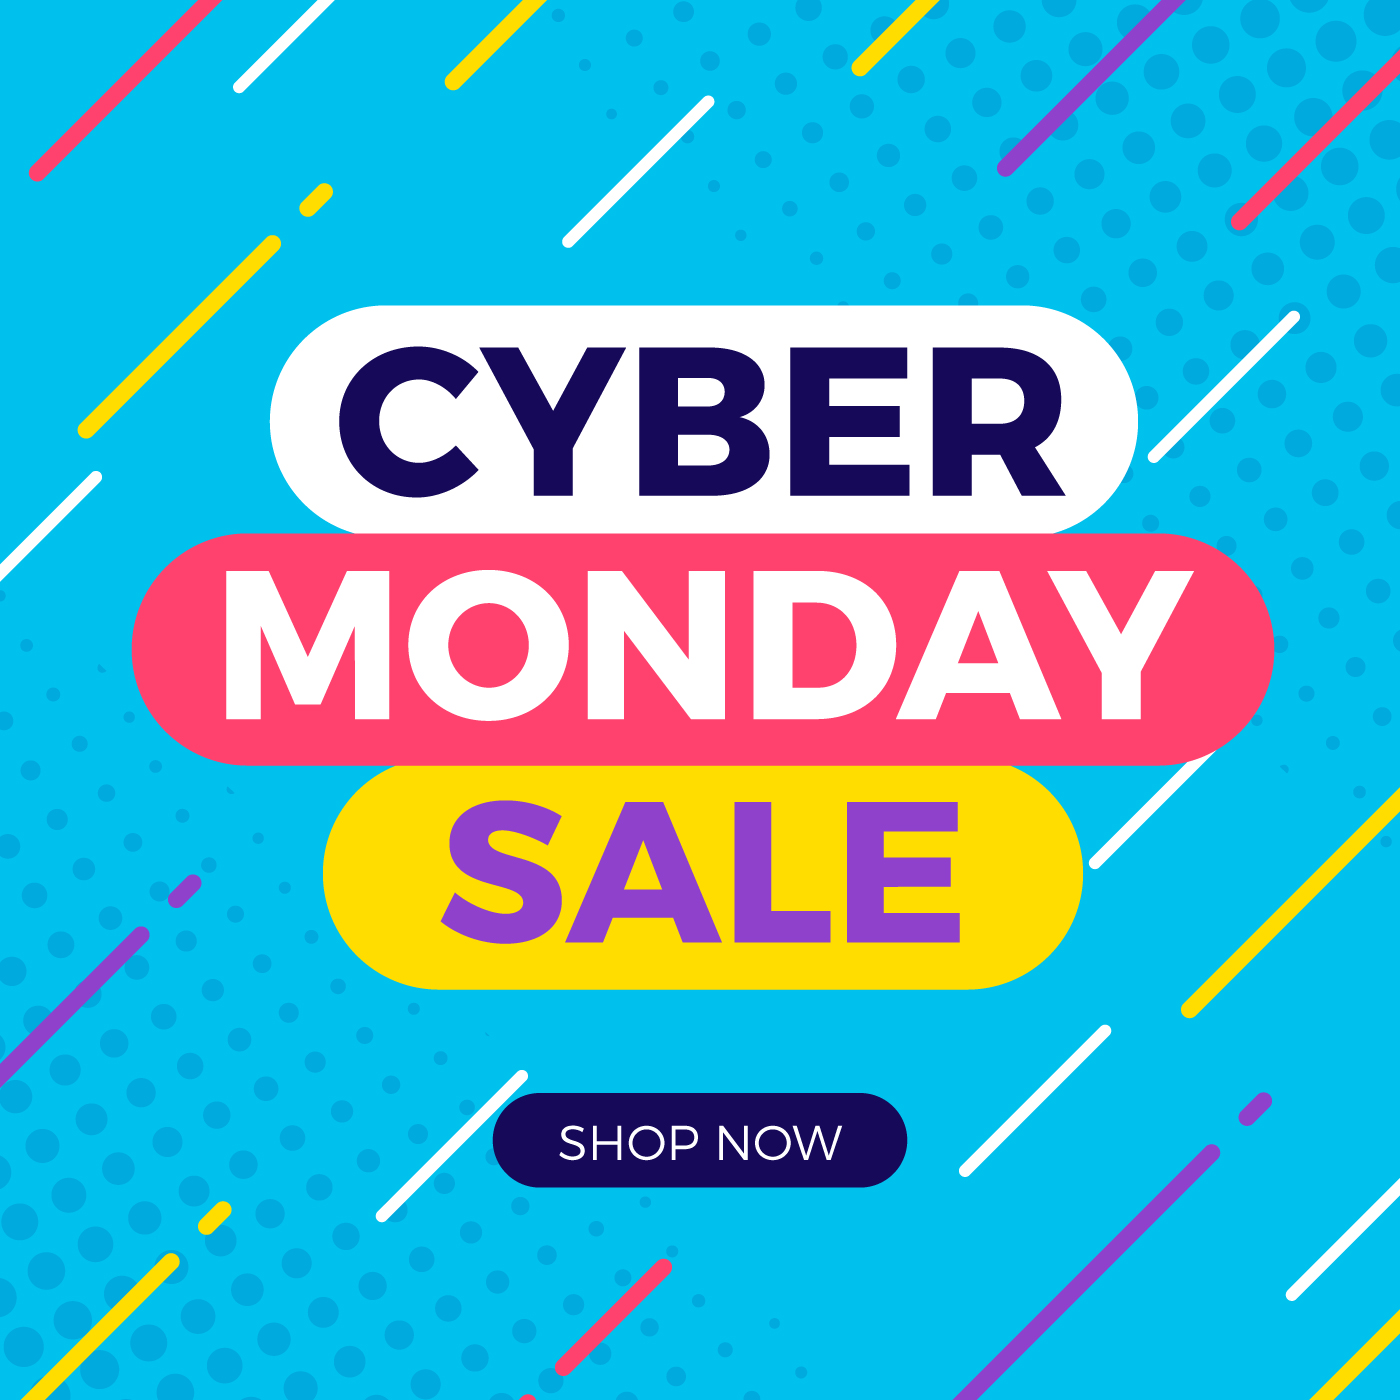 cyber cyber monday sale